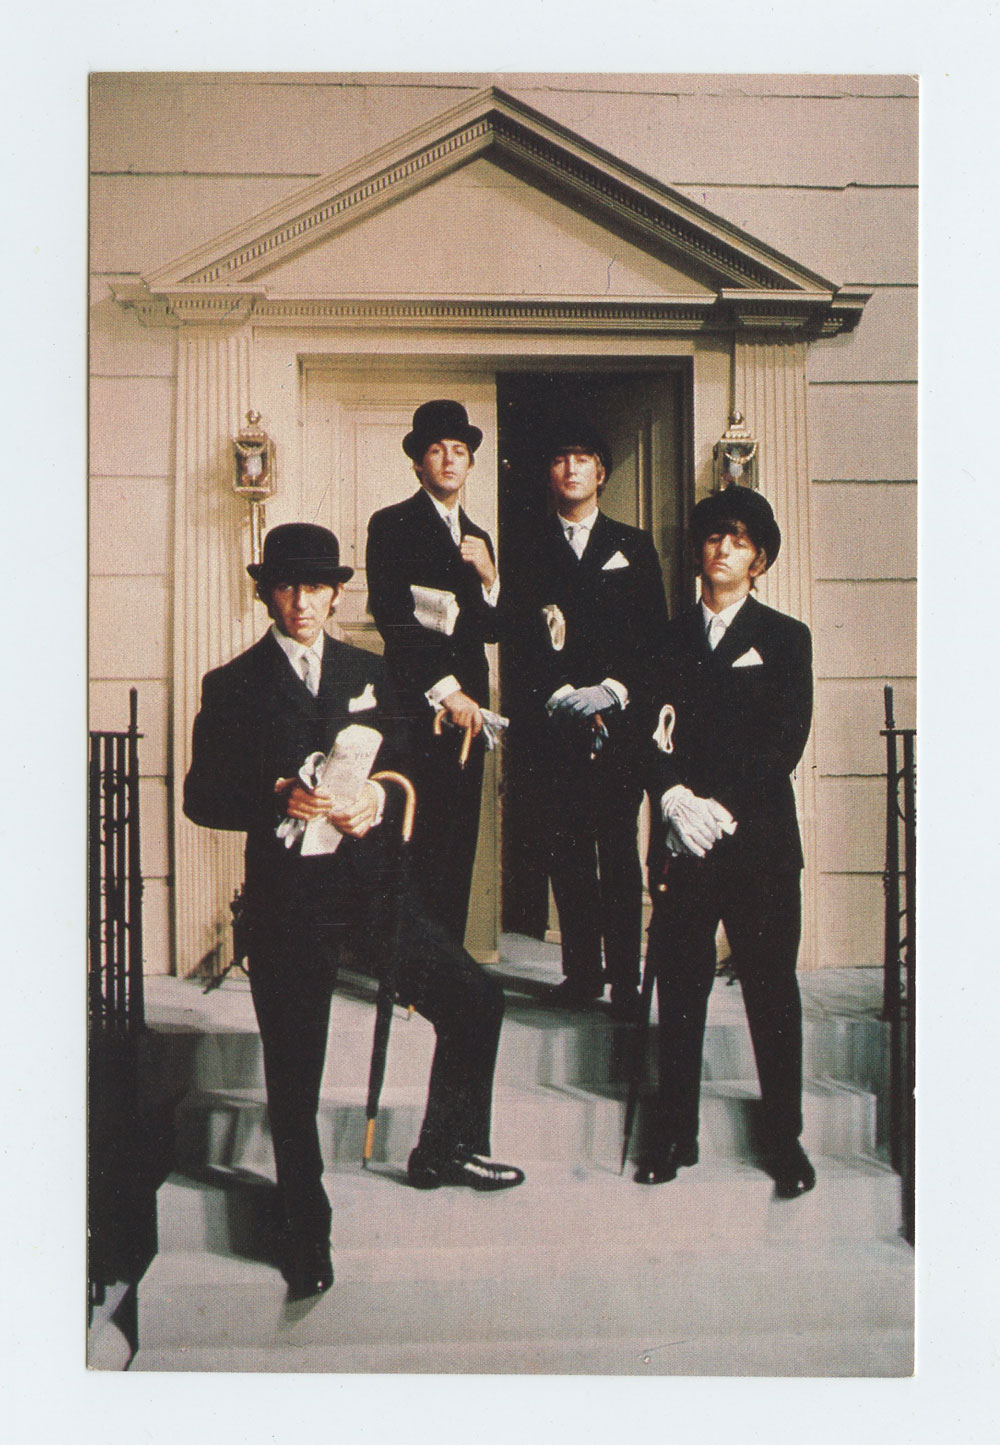 The Beatles Postcard The Saturday Evening Post 1964 cover R1981